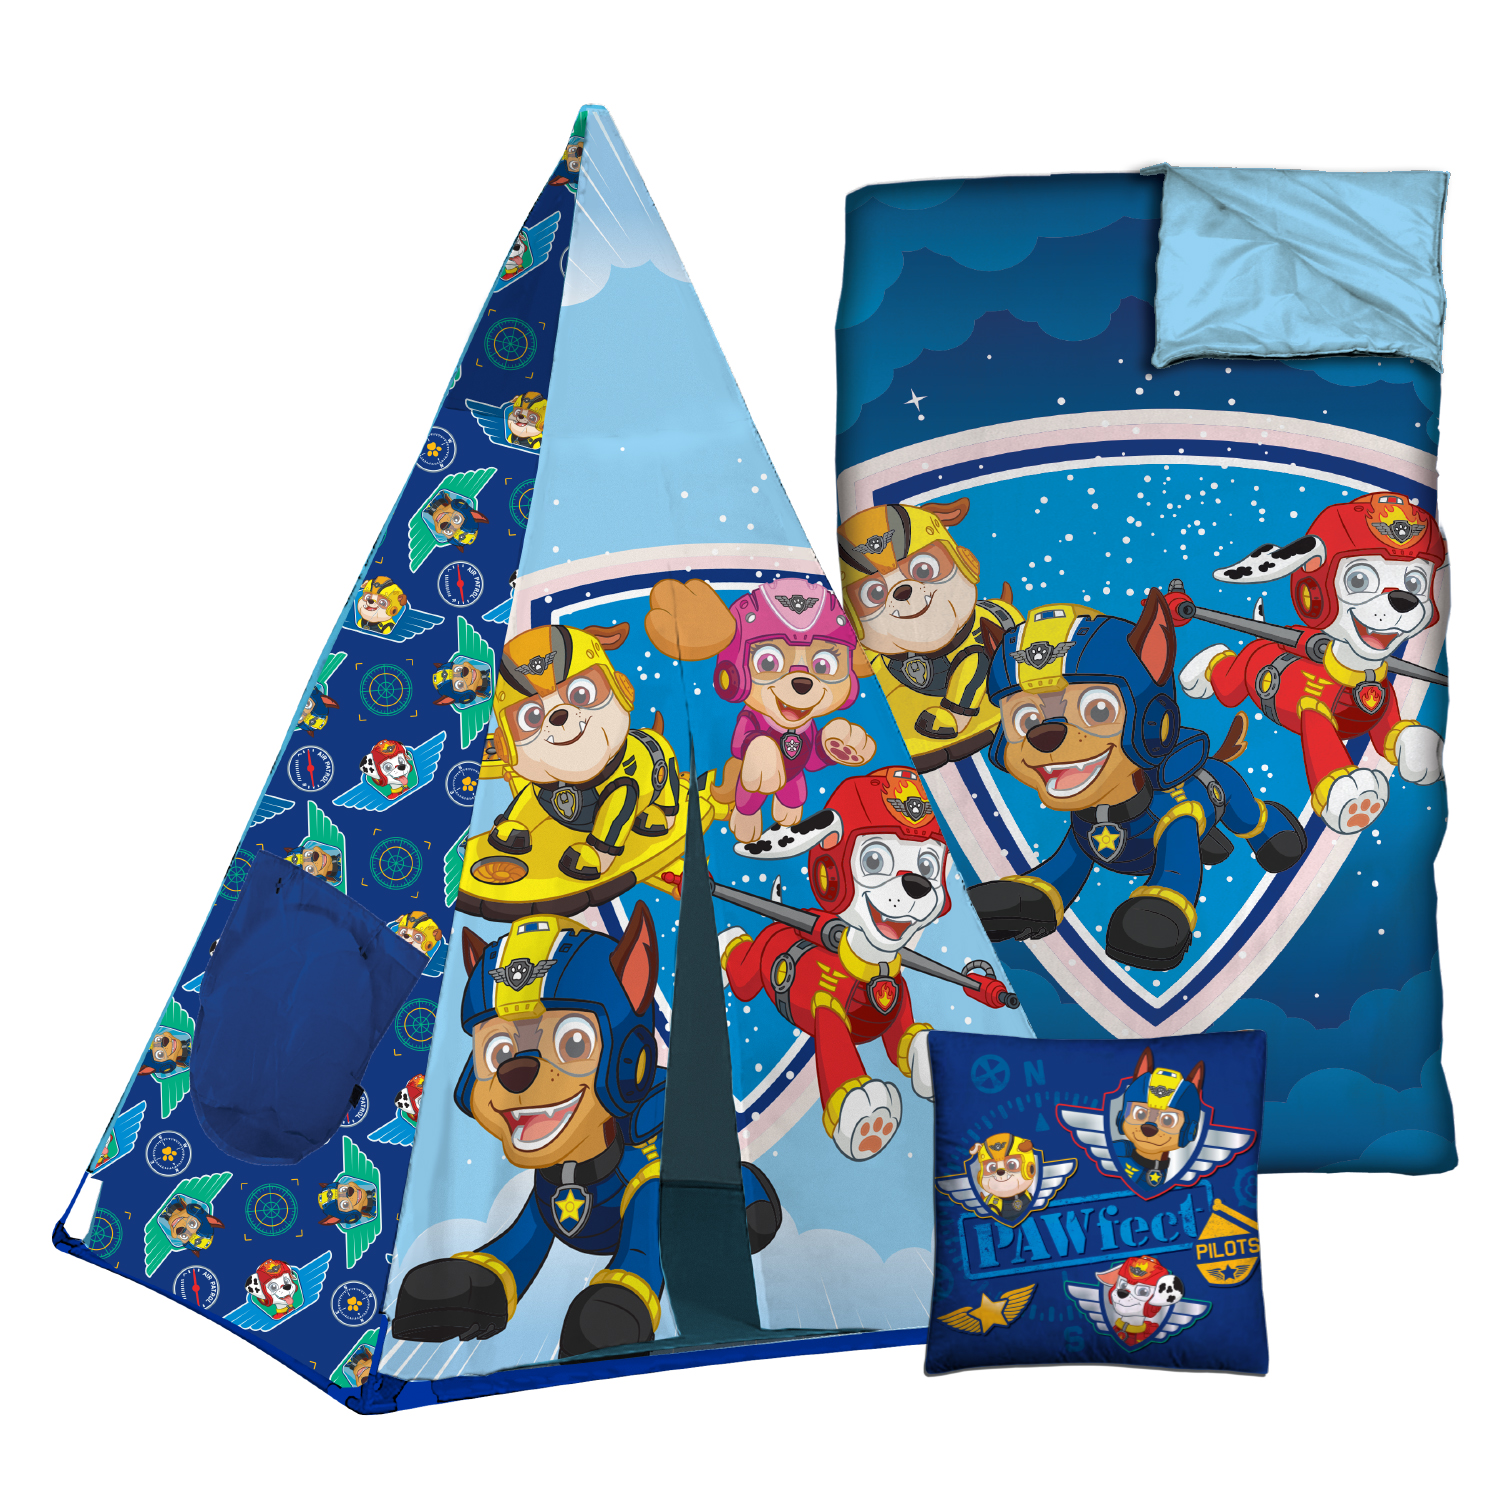 Nickelodeon Paw Patrol Teepee Tent Sleeping Bag Set with BONUS pillow